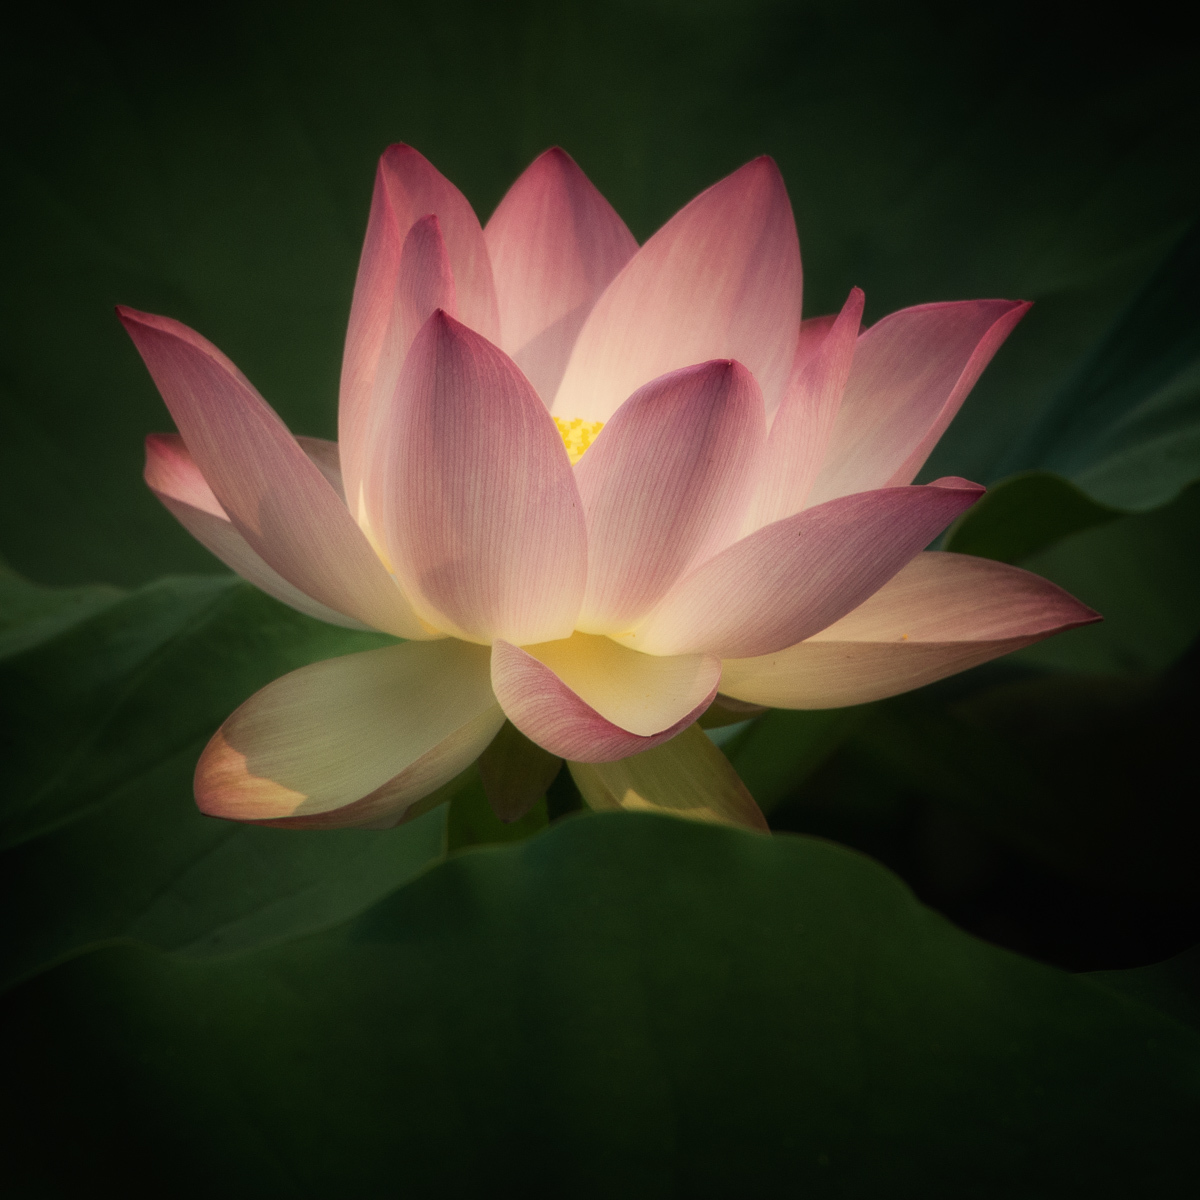 Lotus Blossom II (large view)